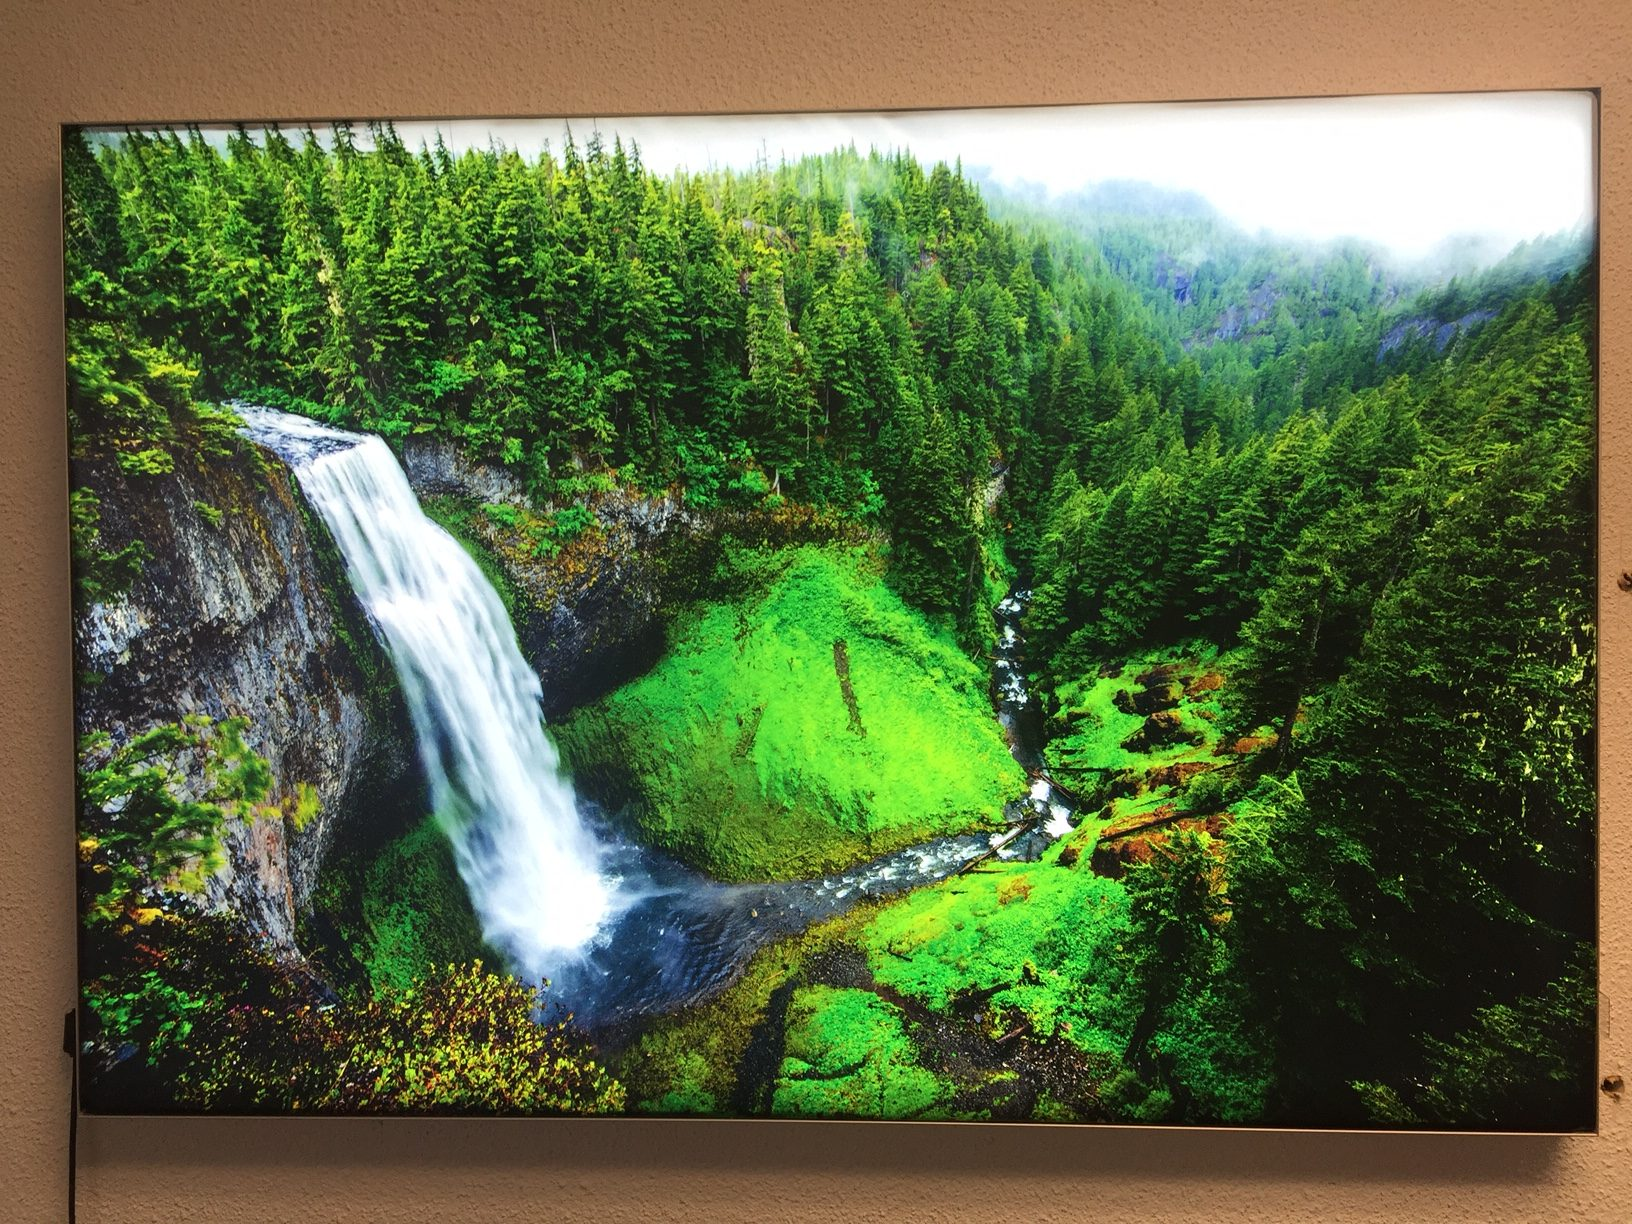 Canvas print of forest with waterfall.